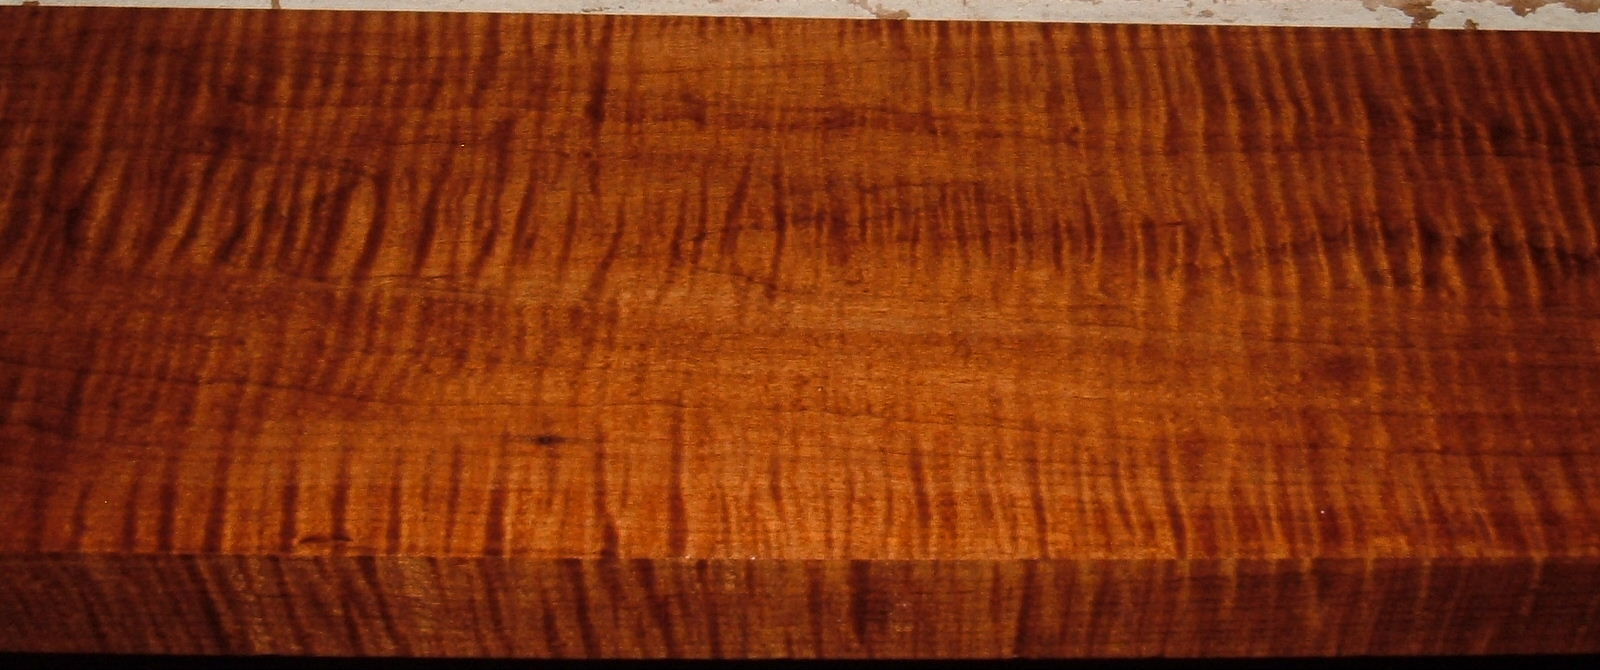 RHM1908-50, 1-1/4x5-1/2x34, Roasted Torrefied, Curly Tiger Hard Maple